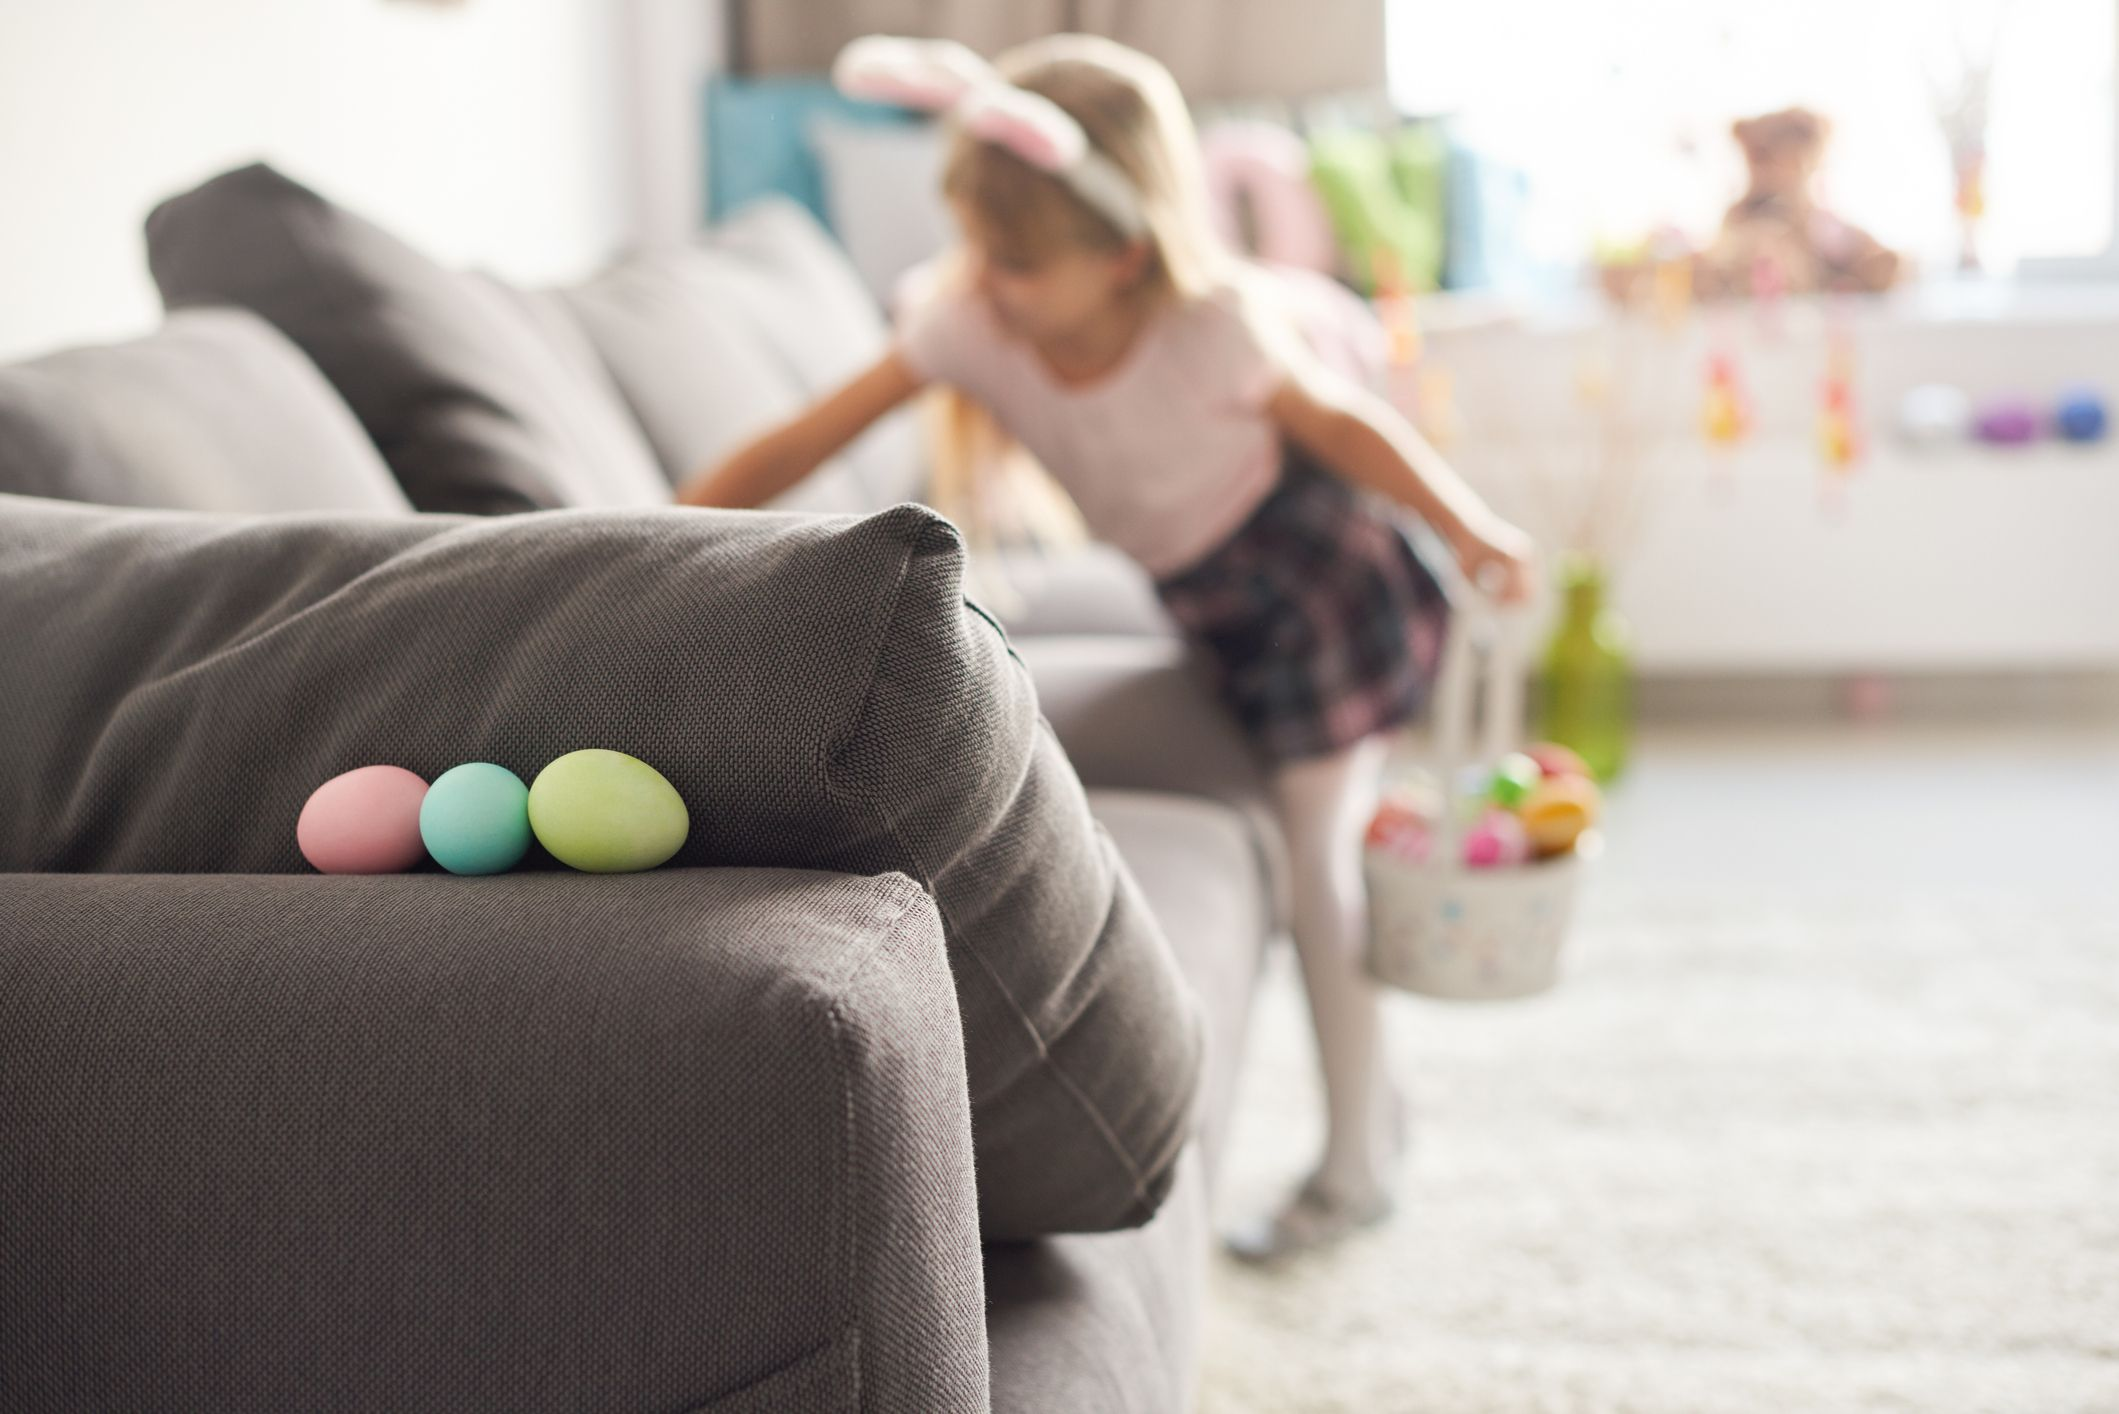 Indoor Easter Egg Hunt Ideas - How to Have an Egg Hunt Inside the House